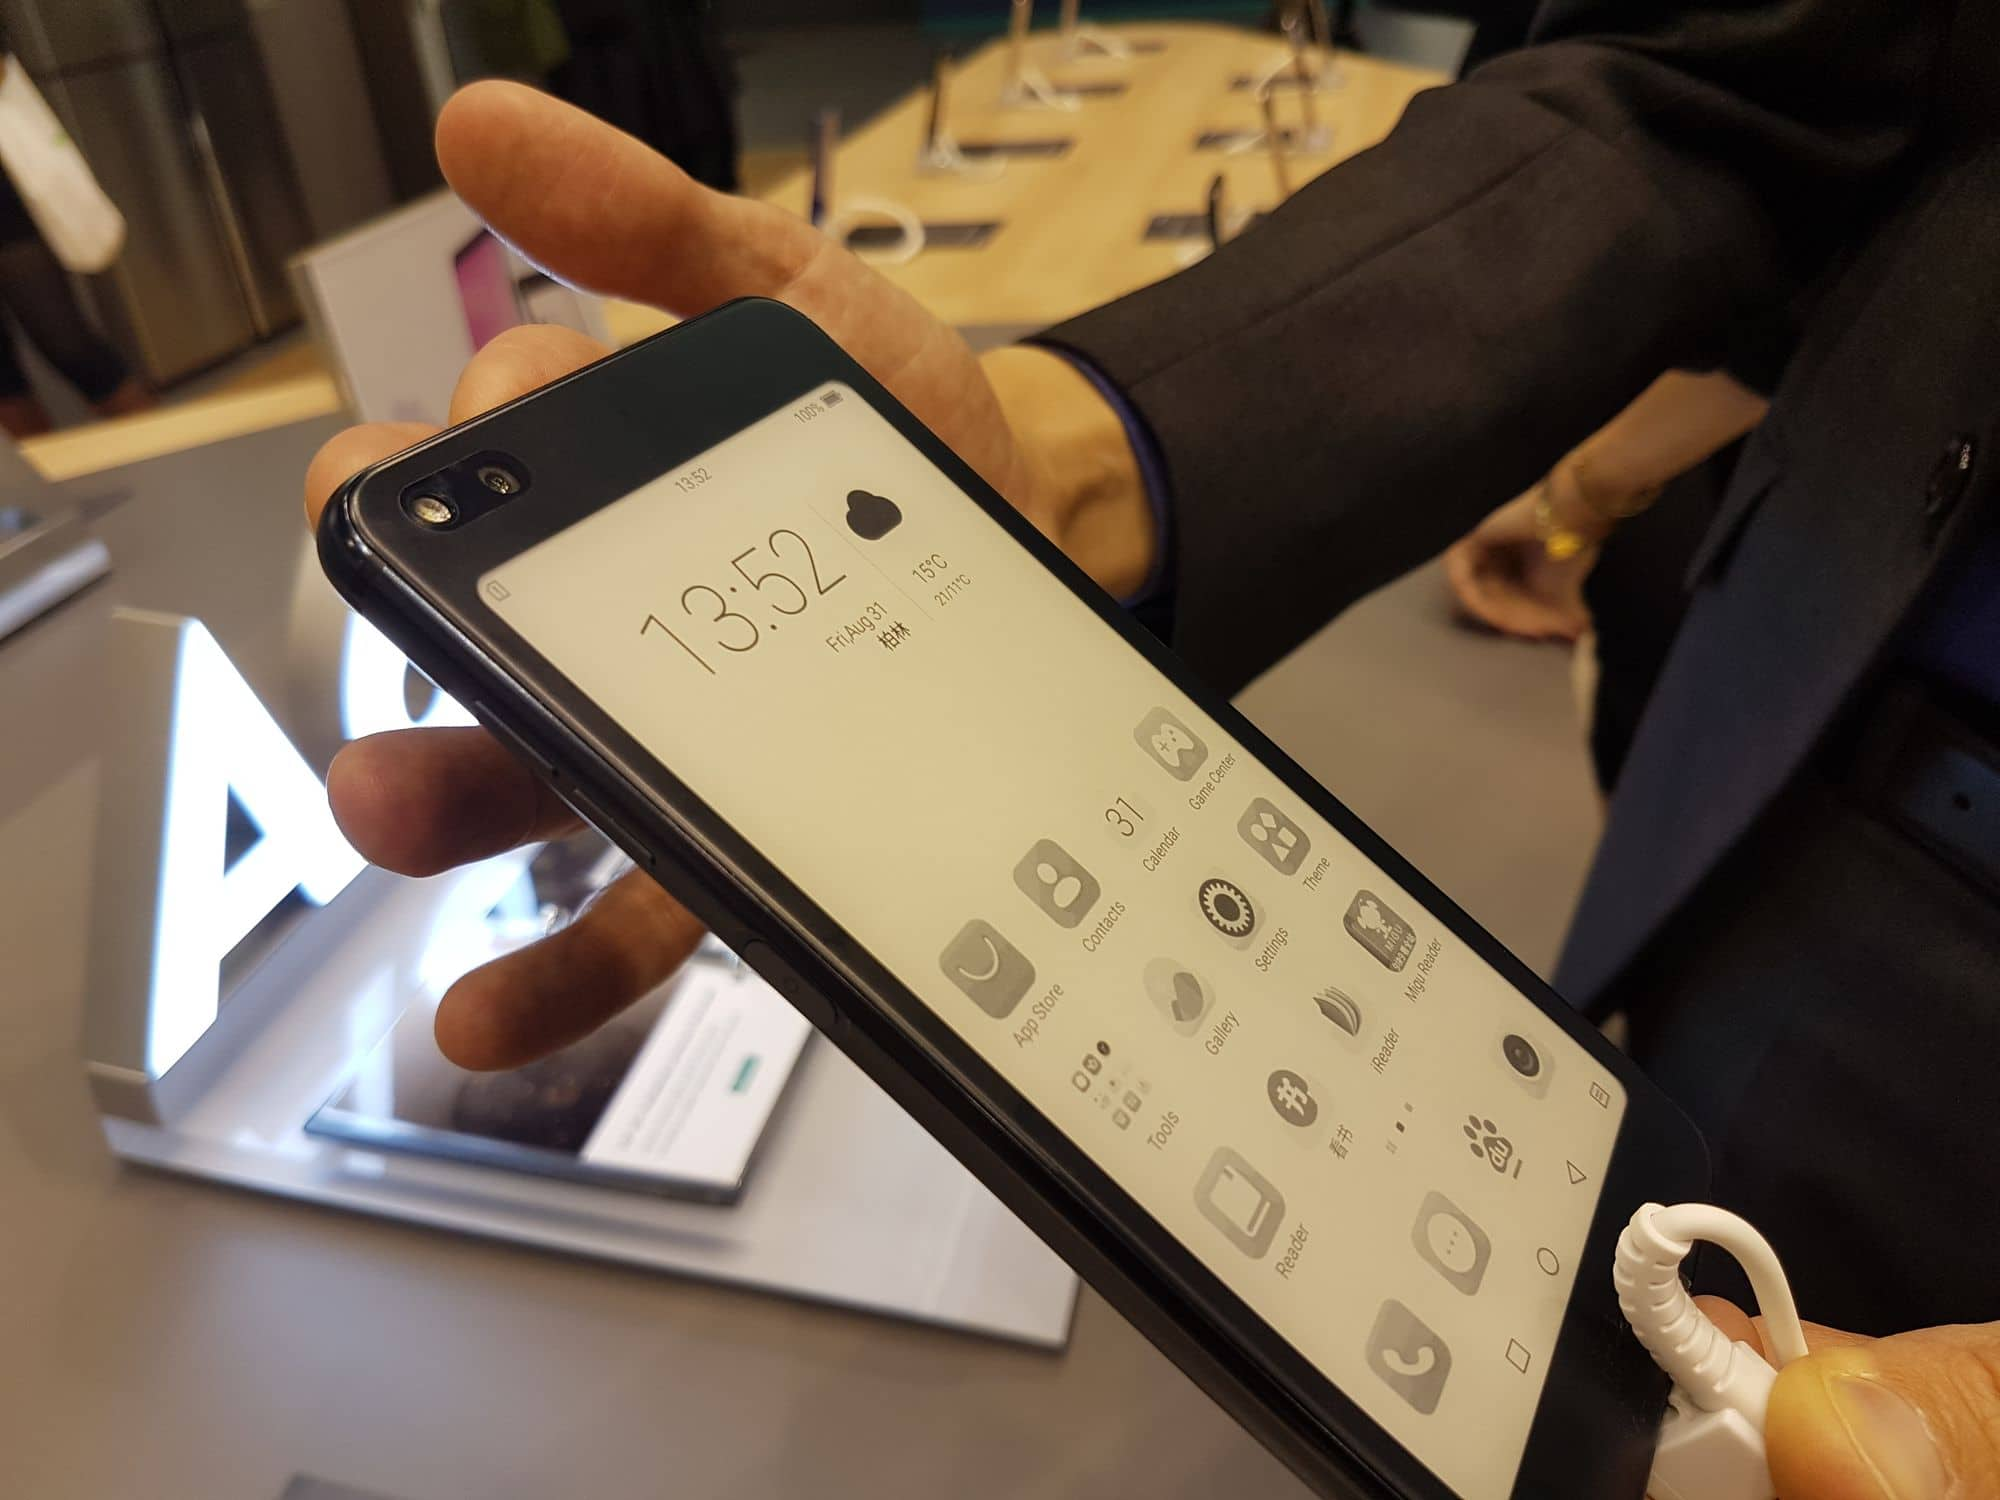 Hisense A6 Is A New Smartphone With An E Ink Screen Working Of Electronic Technology Has Released Few Smartphones In The Past Most Notably A2 That Was Last Year Company Just Unveiled Which Will